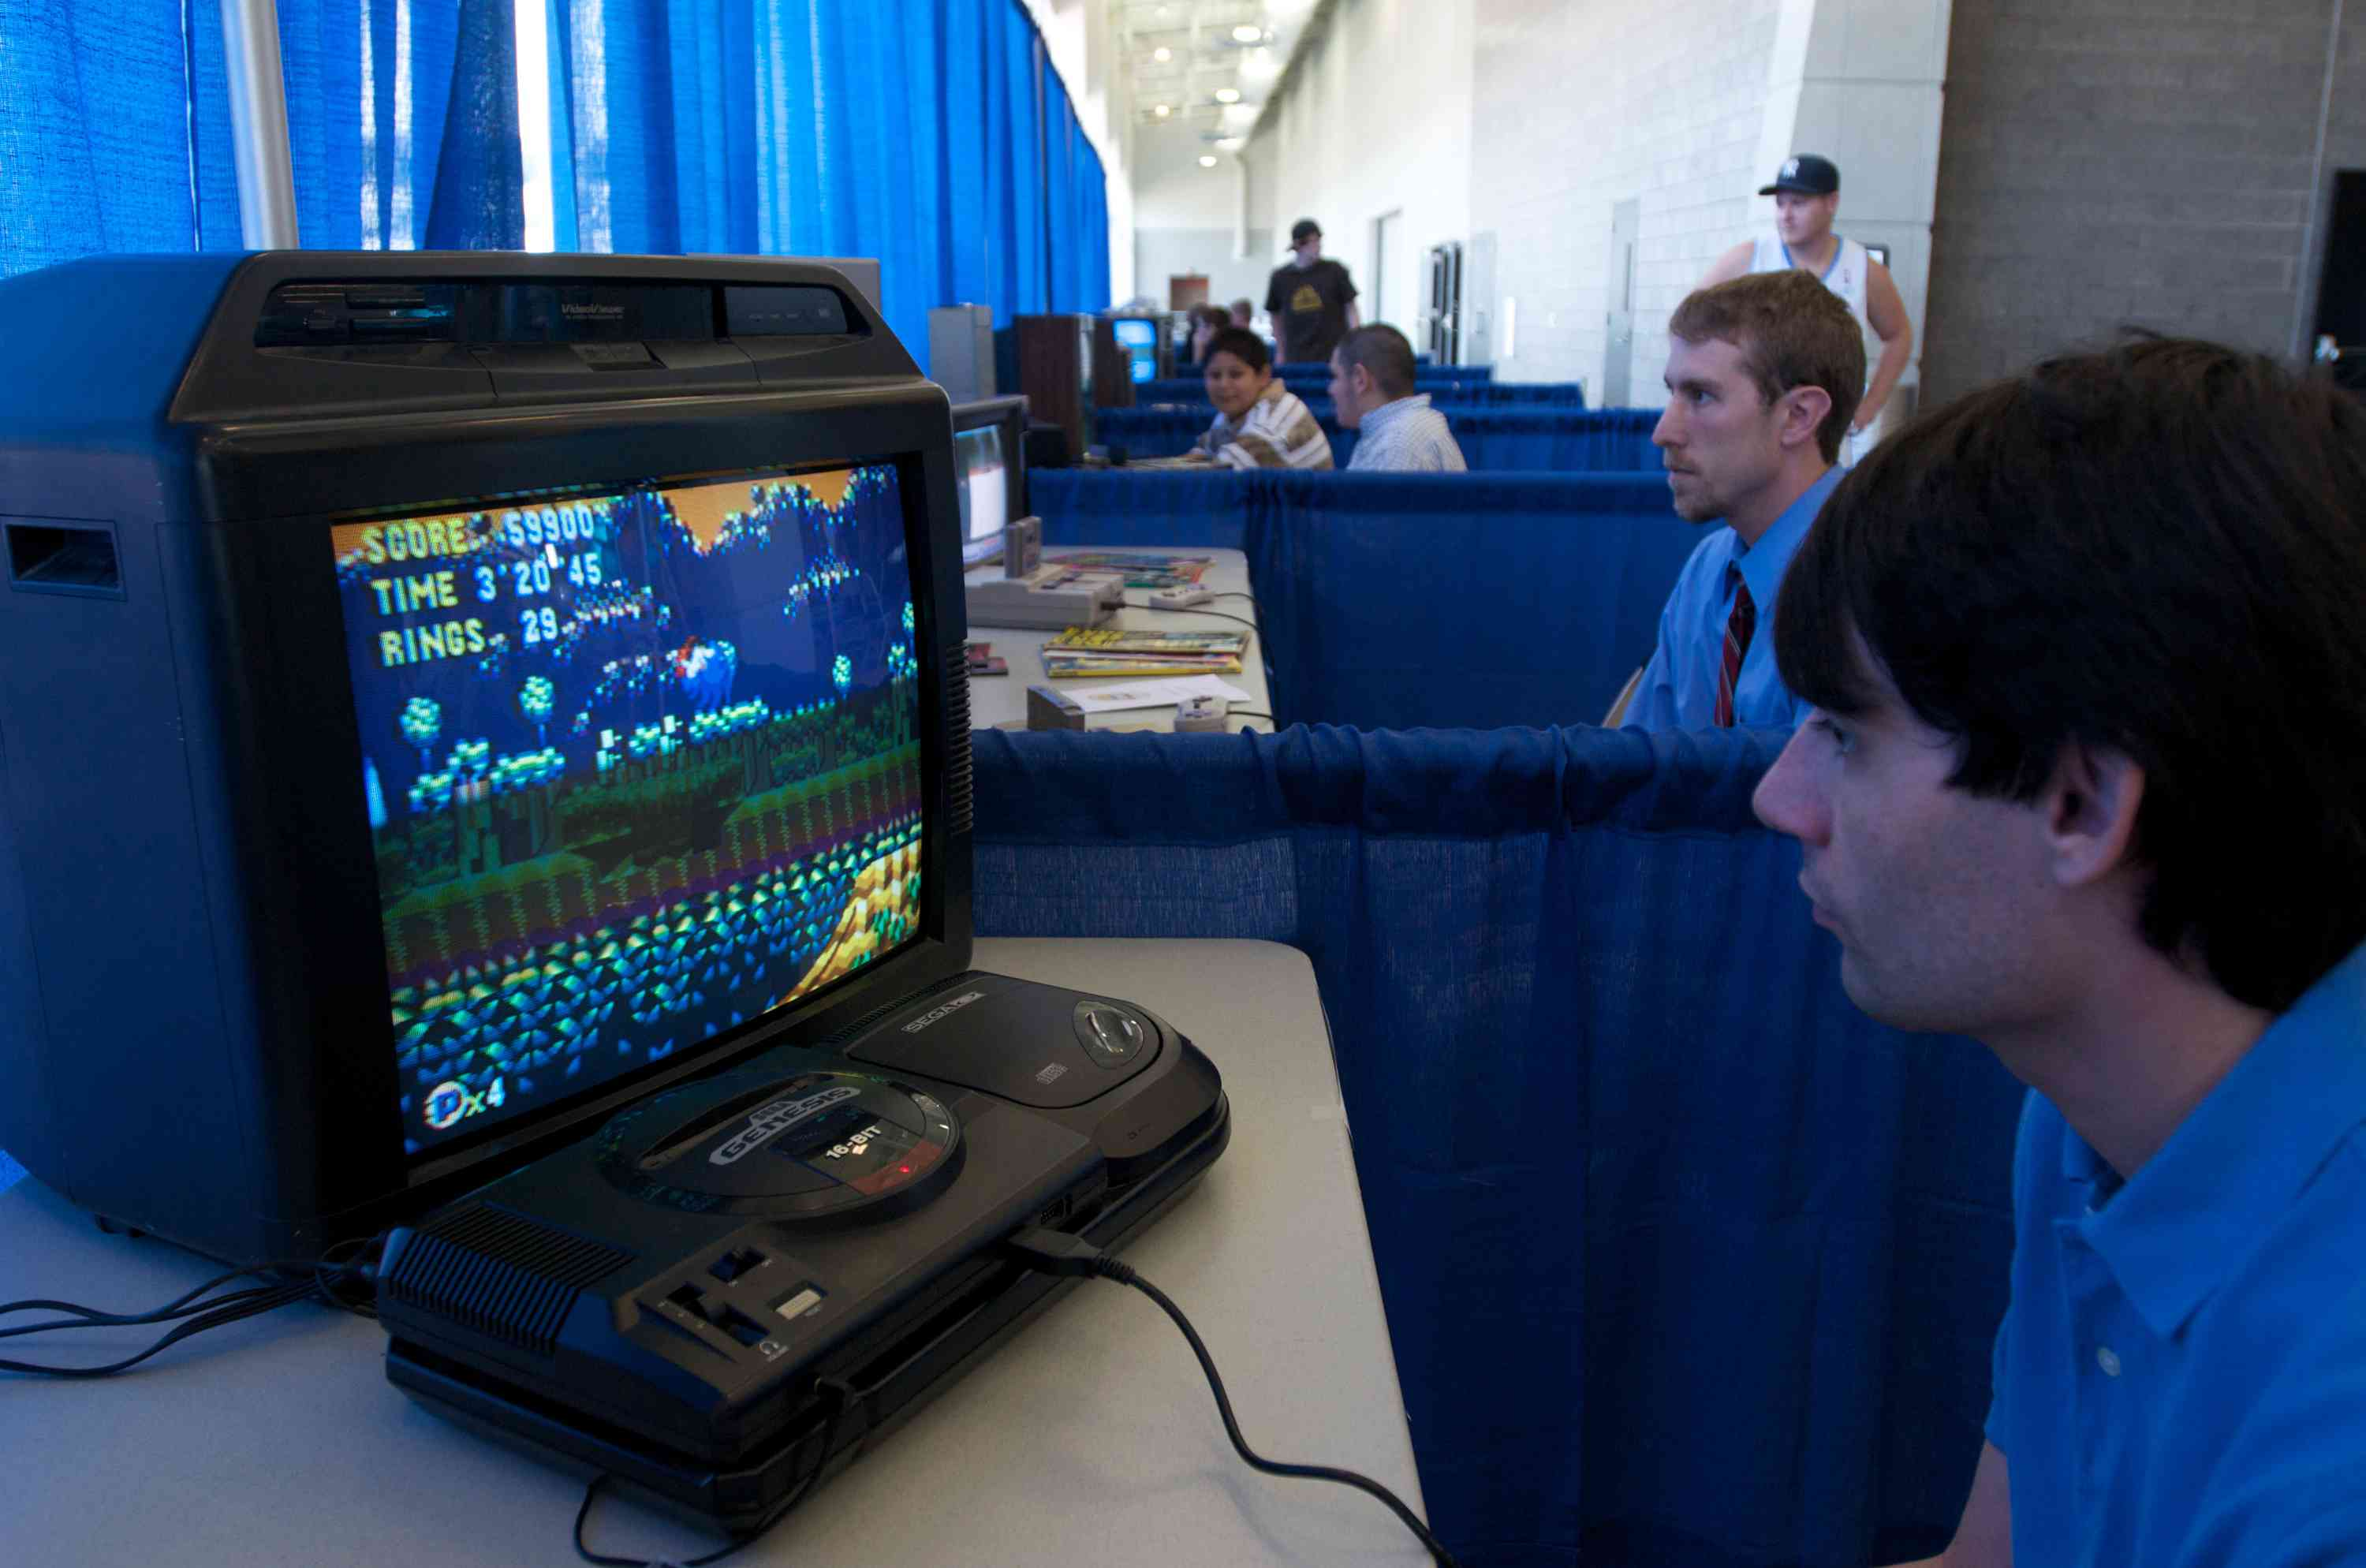 Matthew Murray of Ottumwa, Iowa plays Sonic the Hedgehog on an old Sega Genisis system at the launch party for the International Video Game Hall of Fame